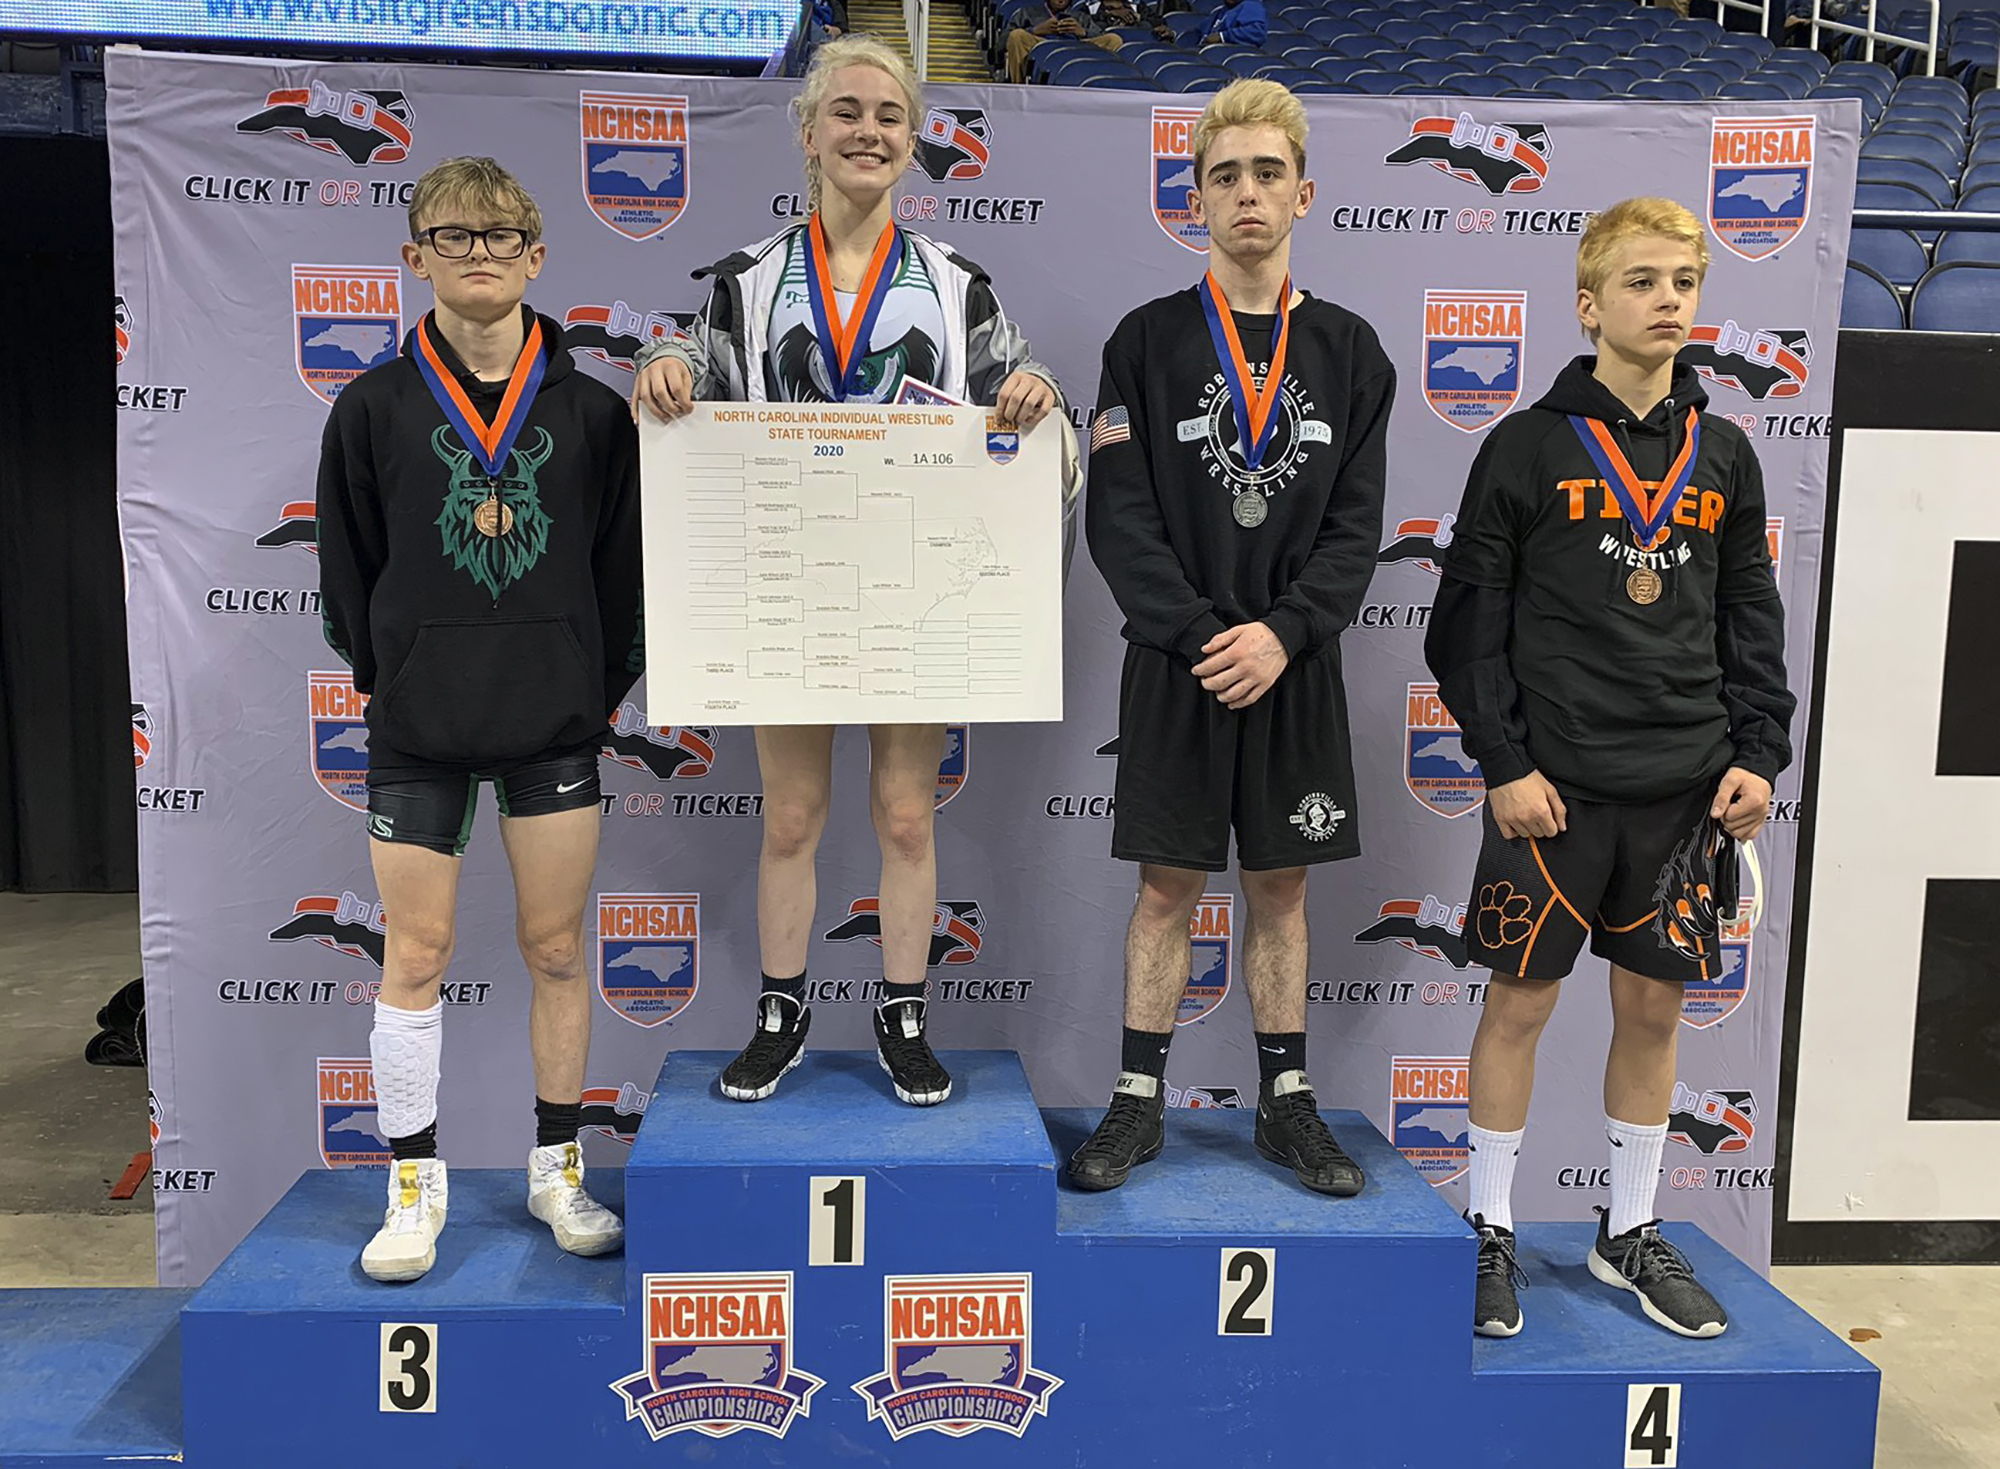 This photo provided by North Carolina High School Athletic Association (NCHSAA) shows Heaven Fitch, center, Luke Wilson, left, and Hunter Fulp, right, and Brandon Ropp, far right,  after the state wrestling championships in Greensboro, N.C, on Saturday, Feb. 22, 2020.